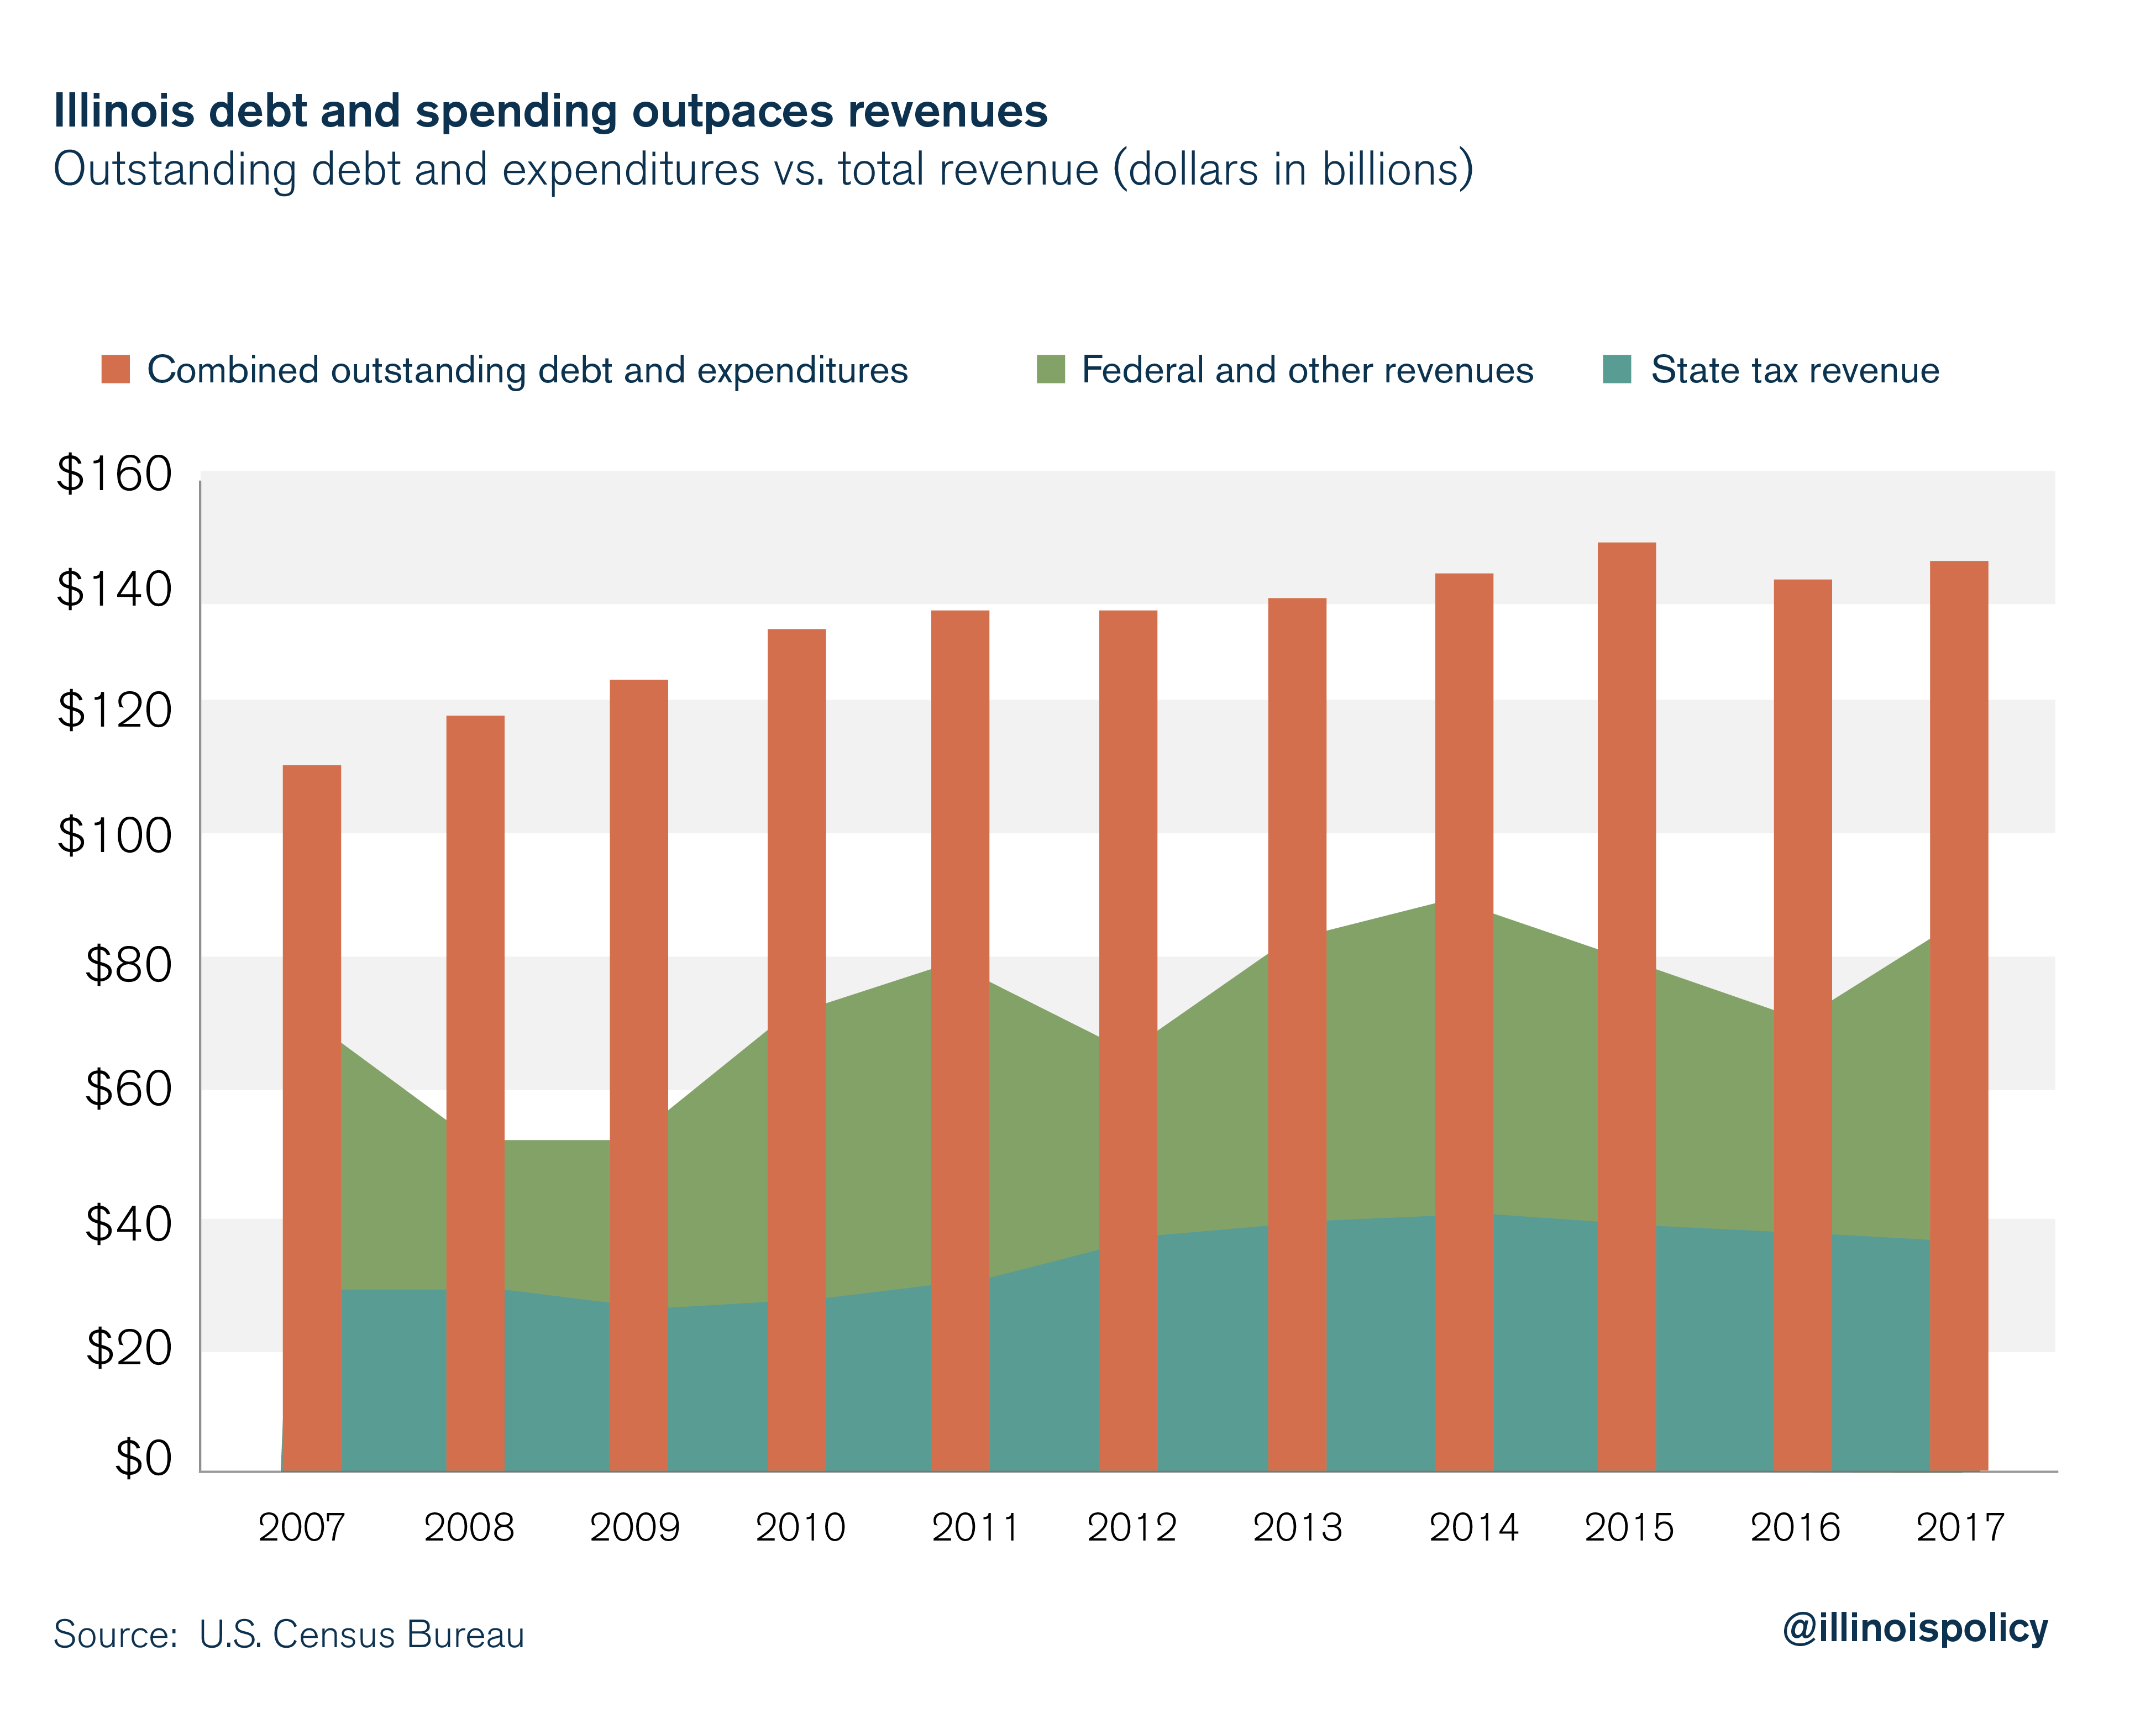 Illinois debt and spending outpaces revenues